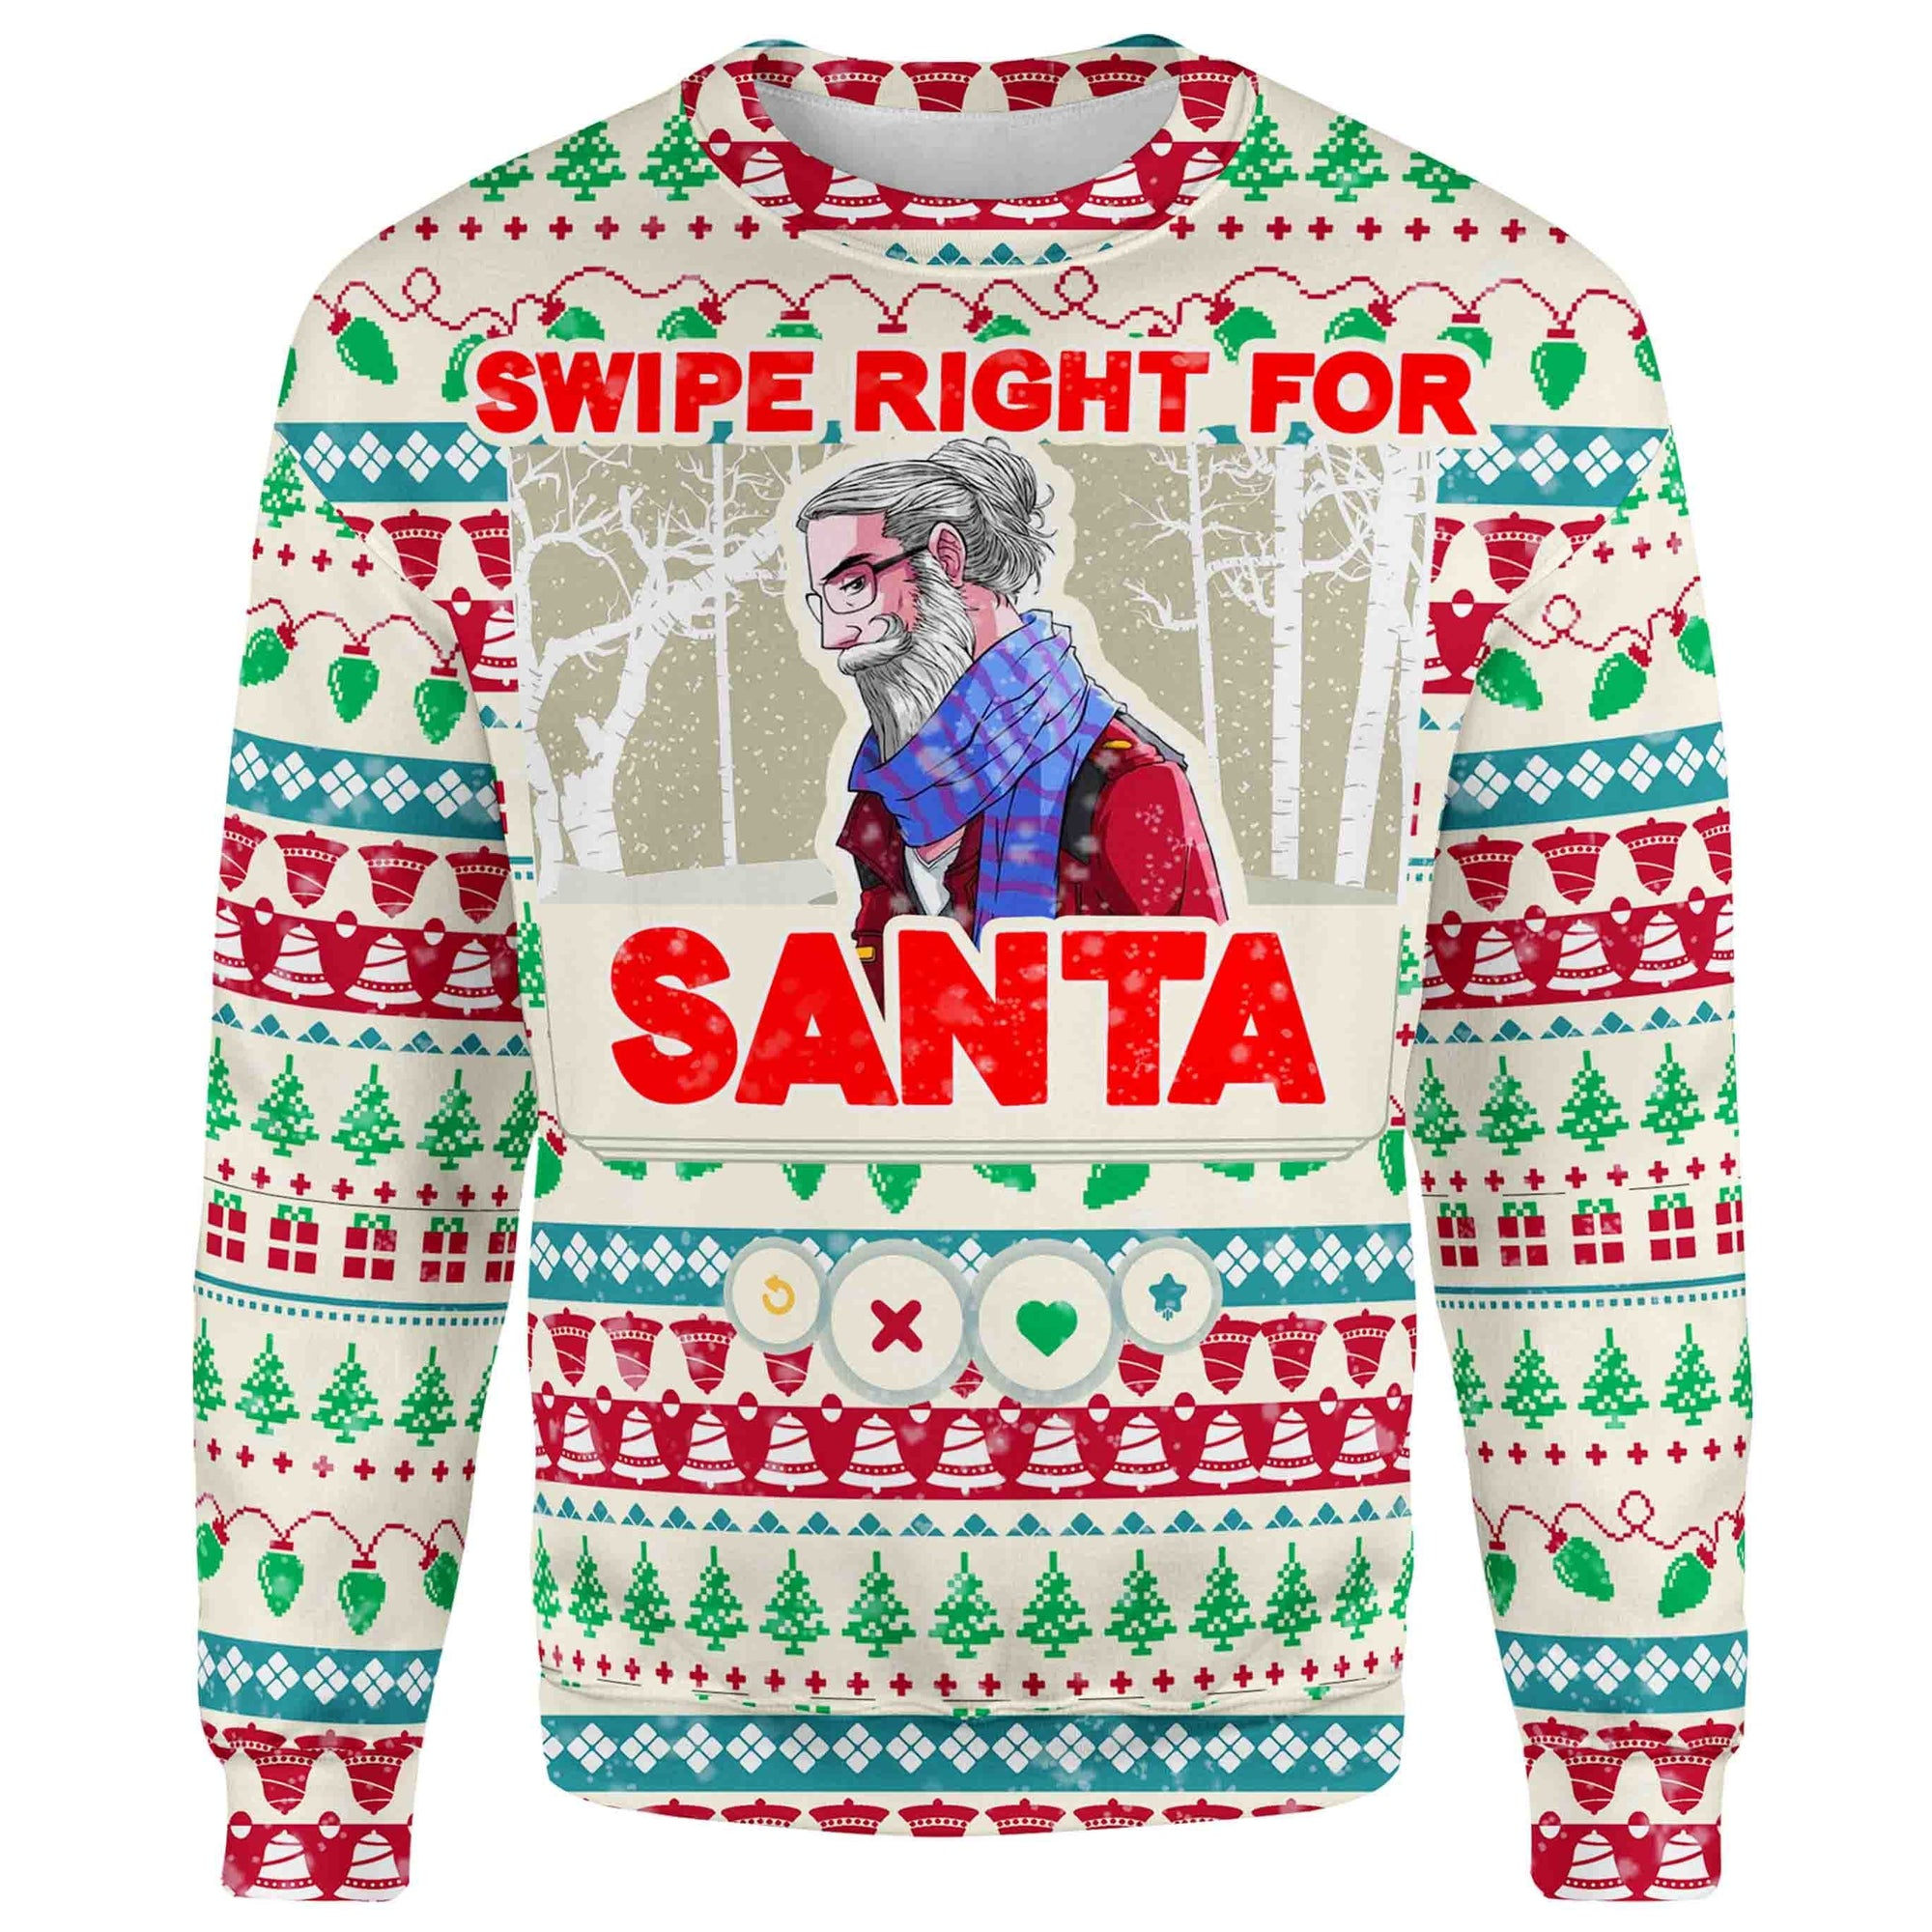 Swipe Right For Santa Christmas Sweater